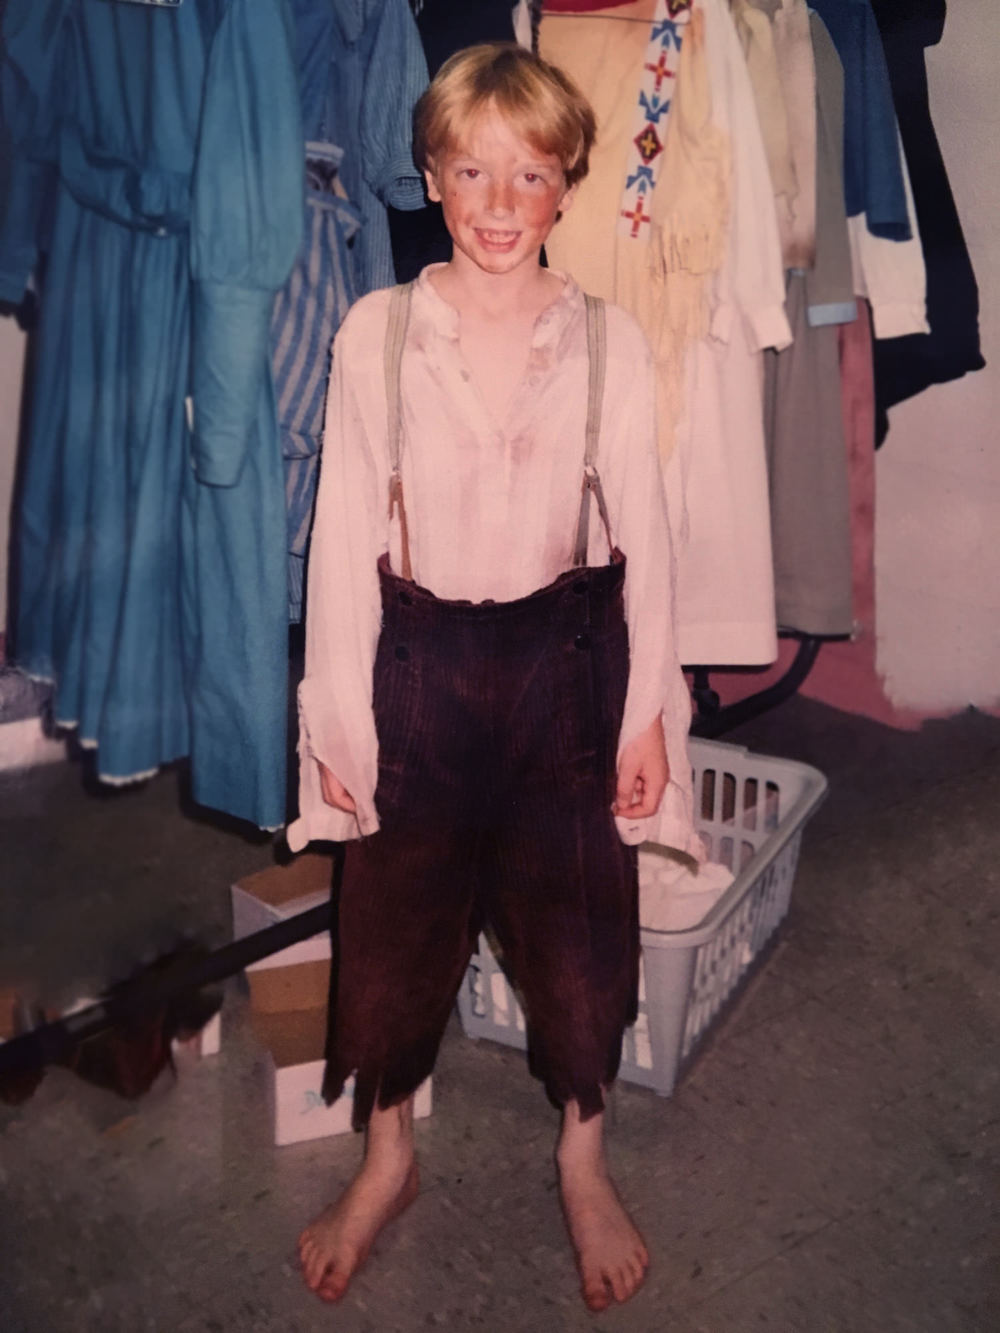 RDCE as an urchin boy in Annie Get Your Gun